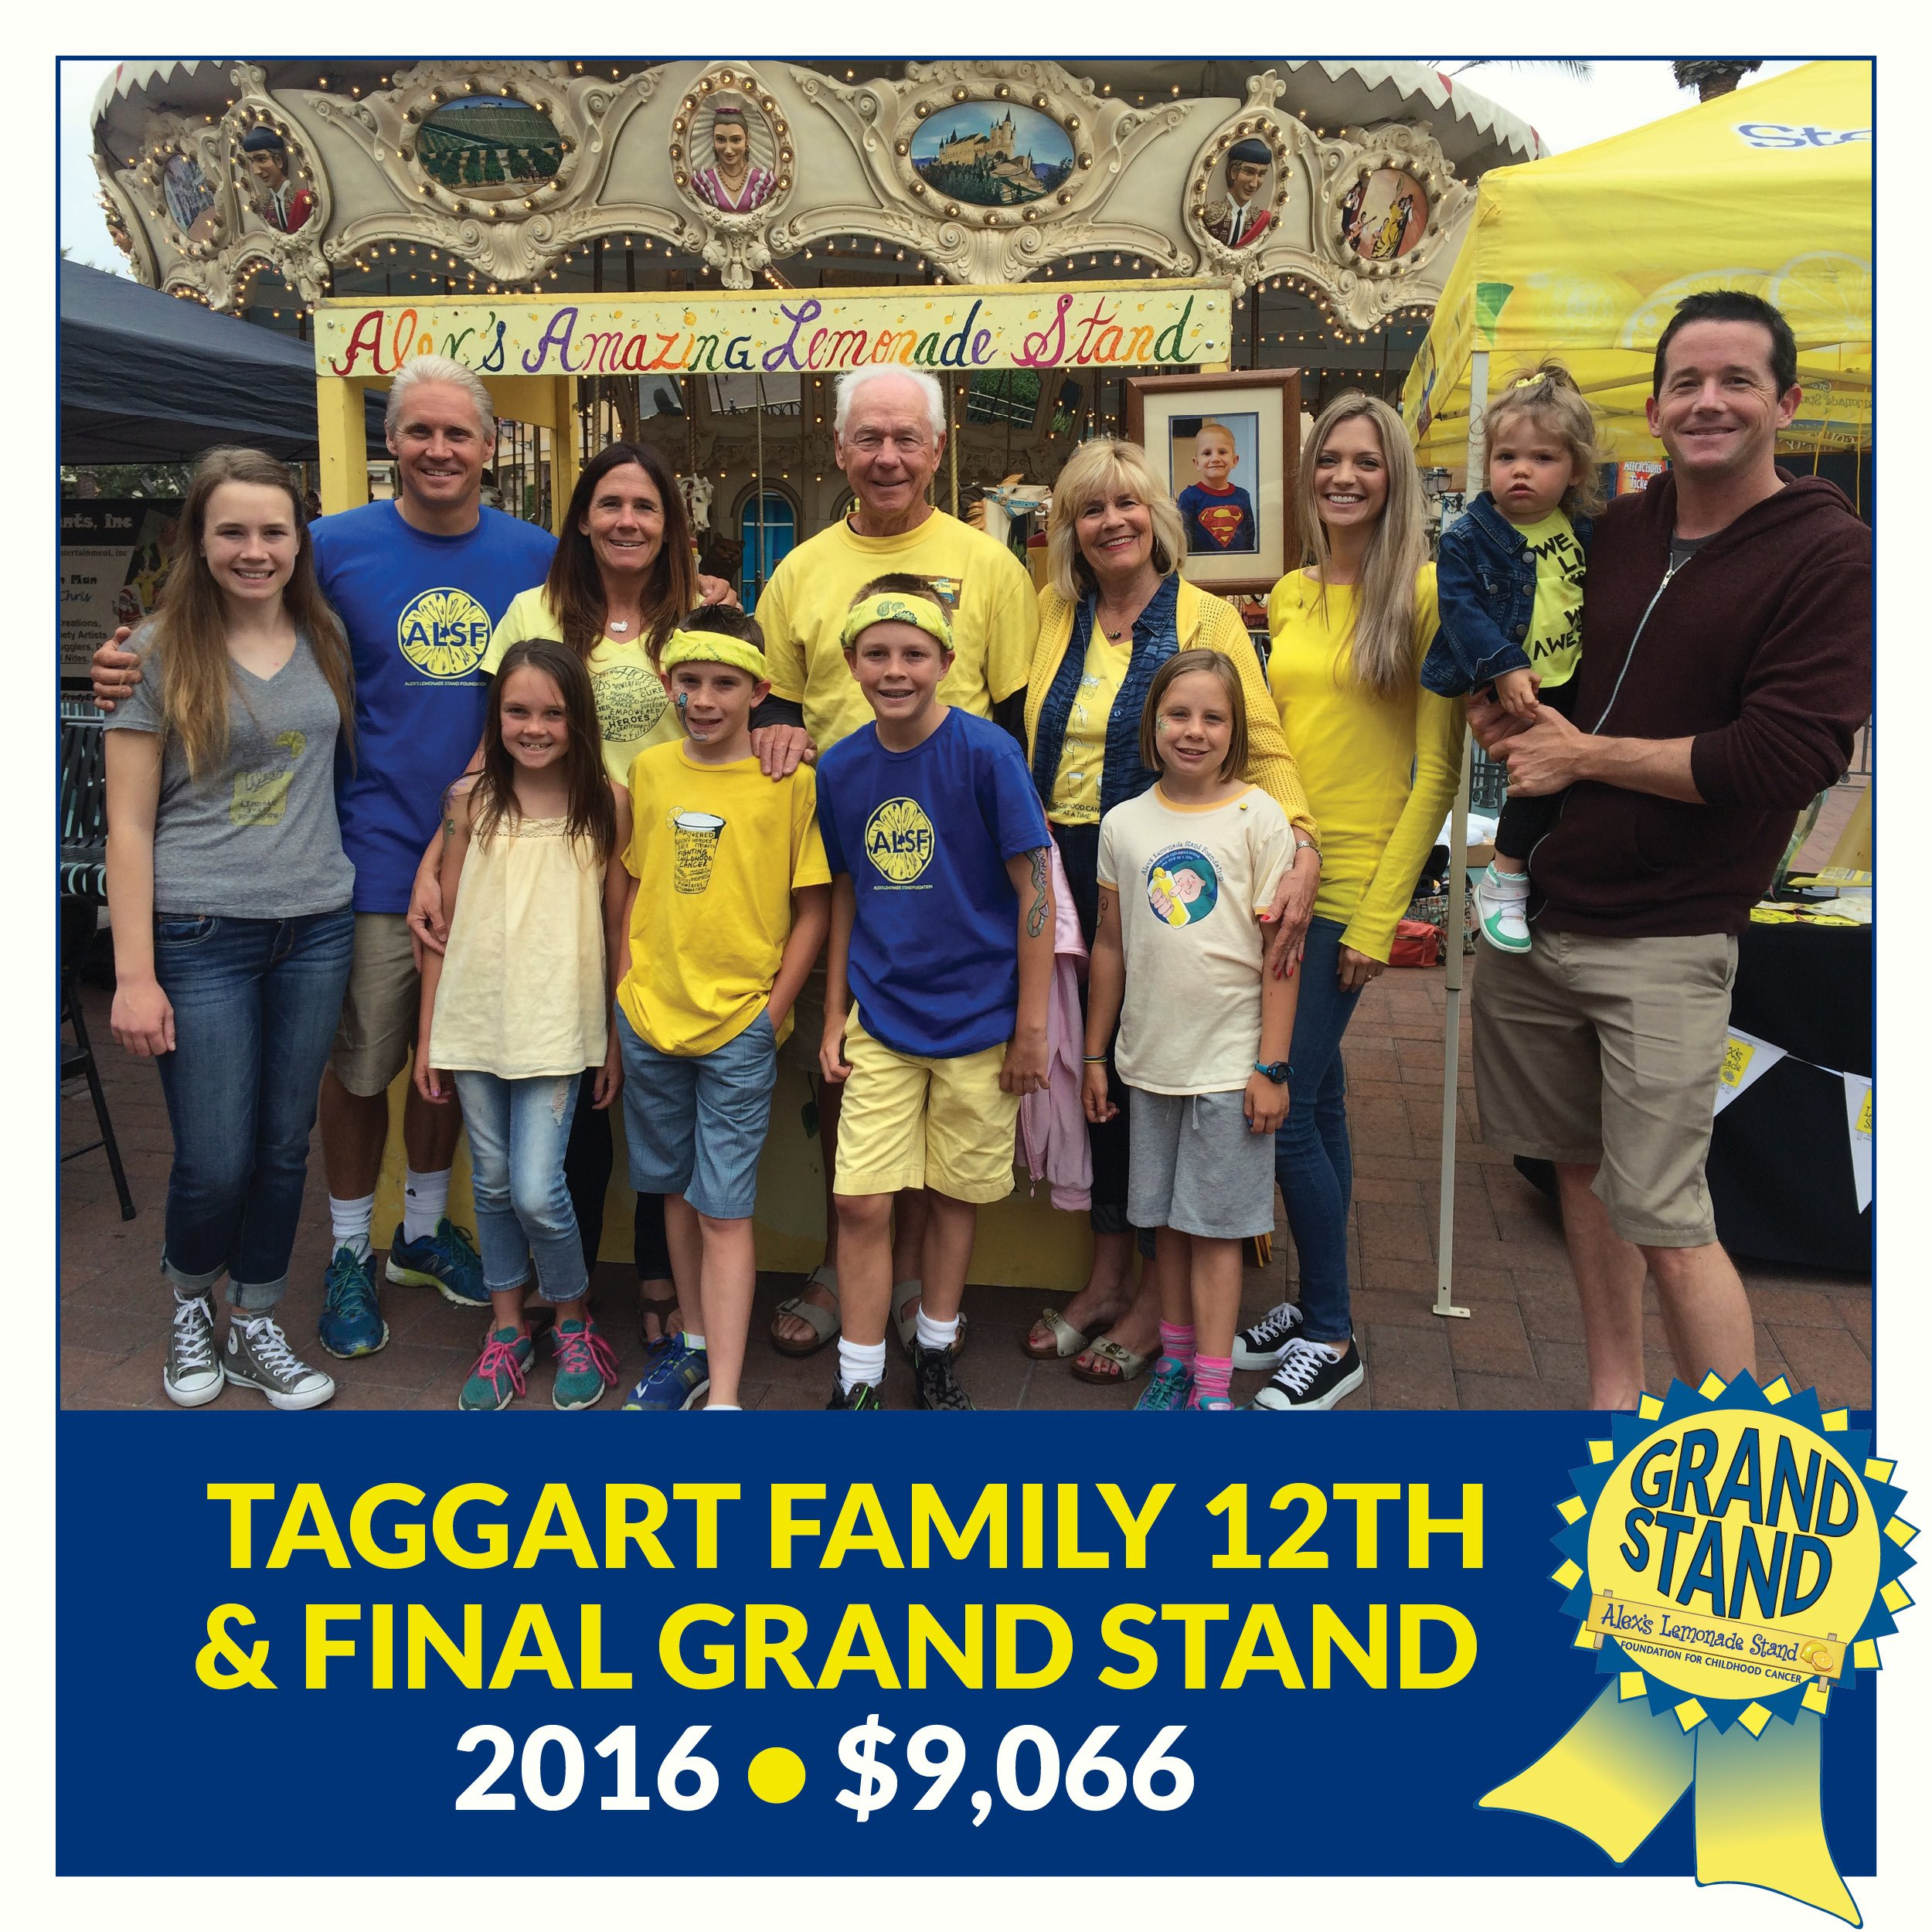 Taggart Grand Stand 2016